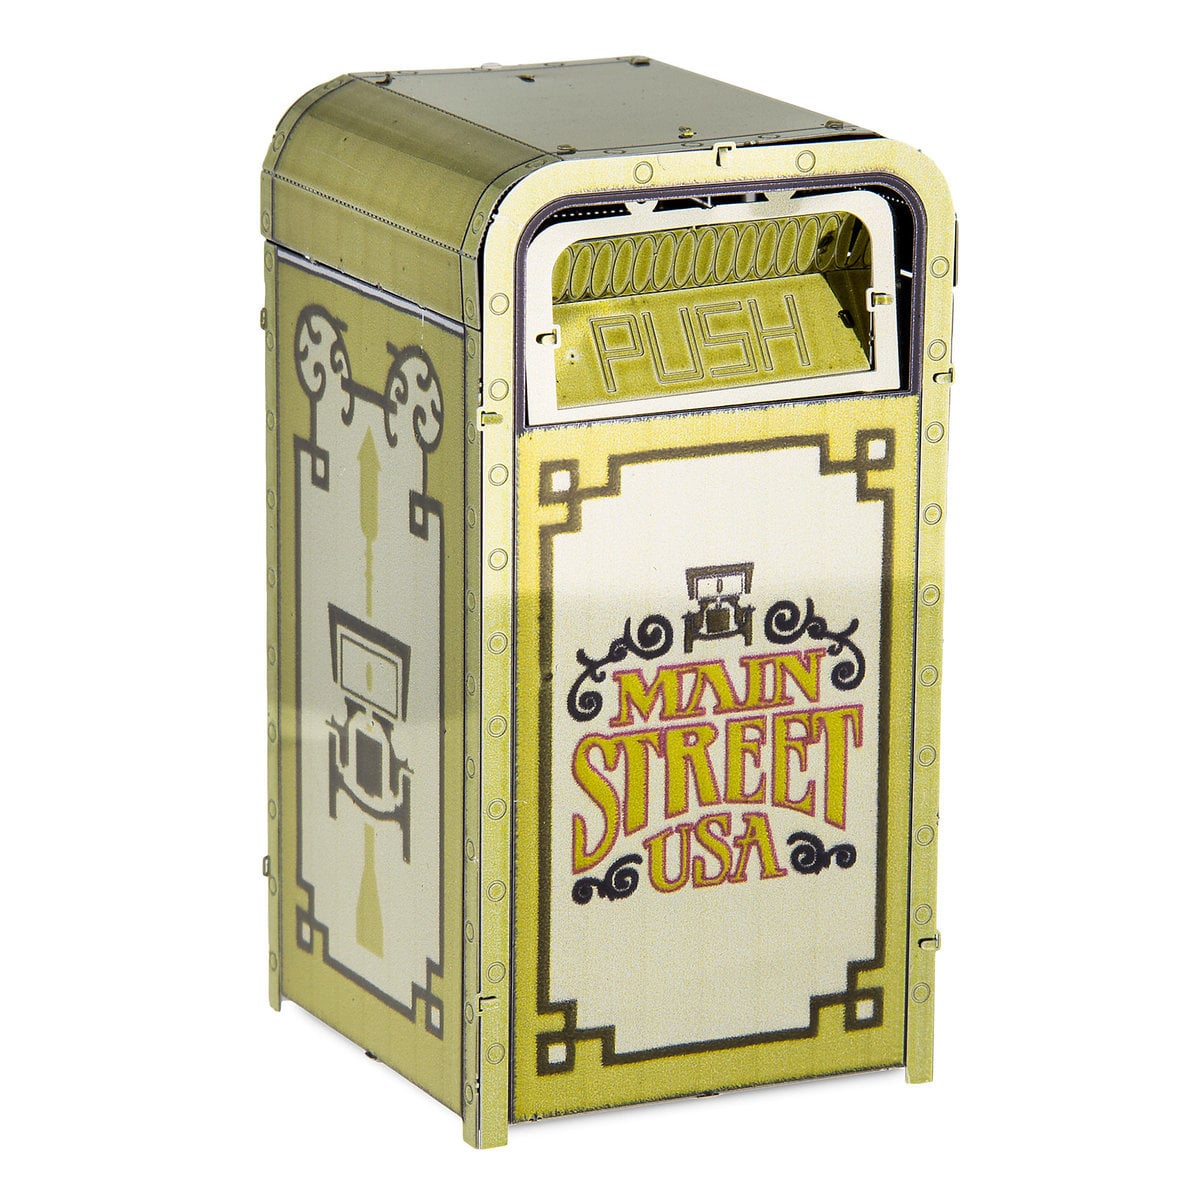 Fun Trash Can Disney 3d Model Kit Metal Earth Park Icon Main Street Trash Can